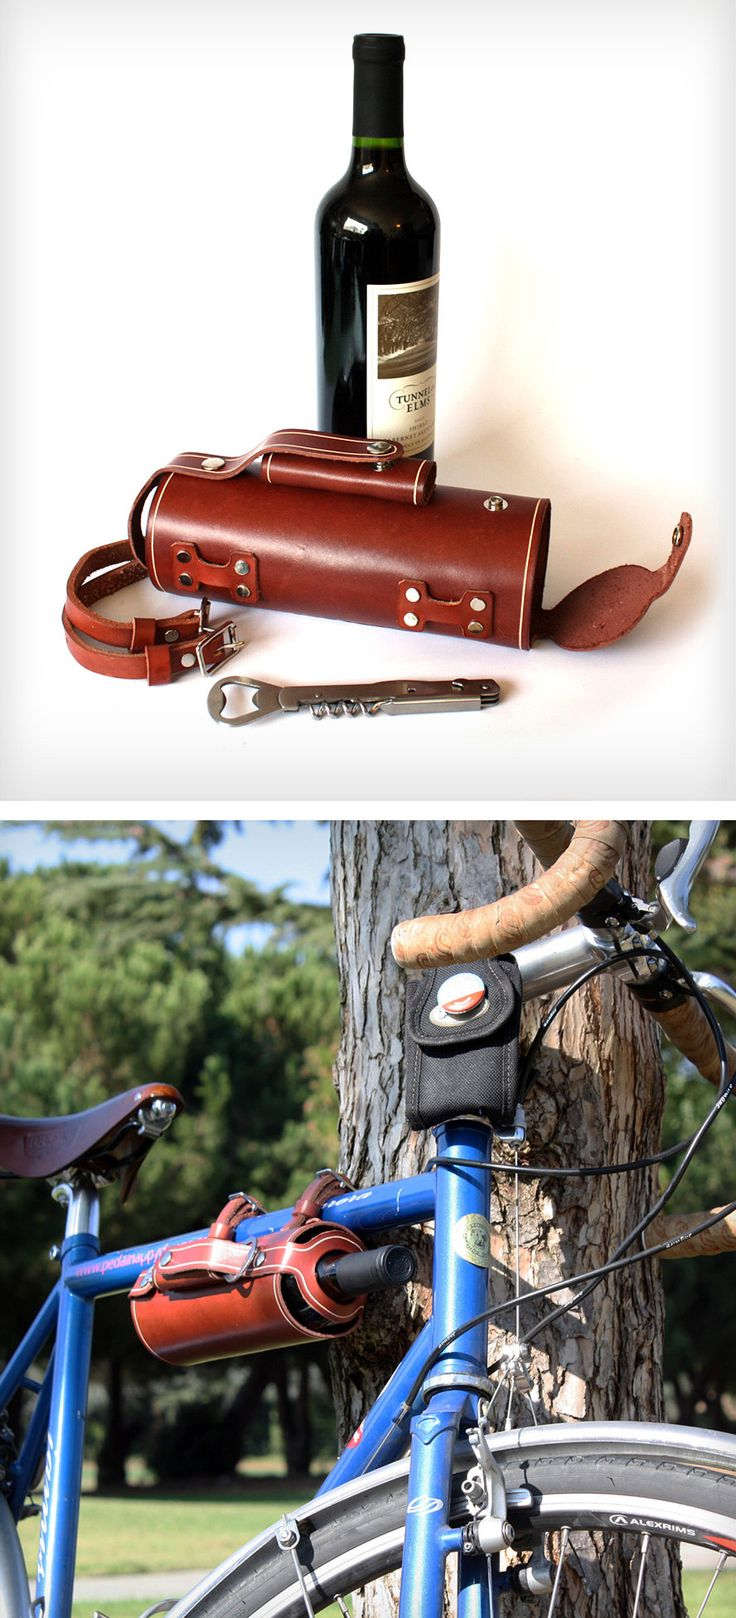 Bike-mounted wine carrier